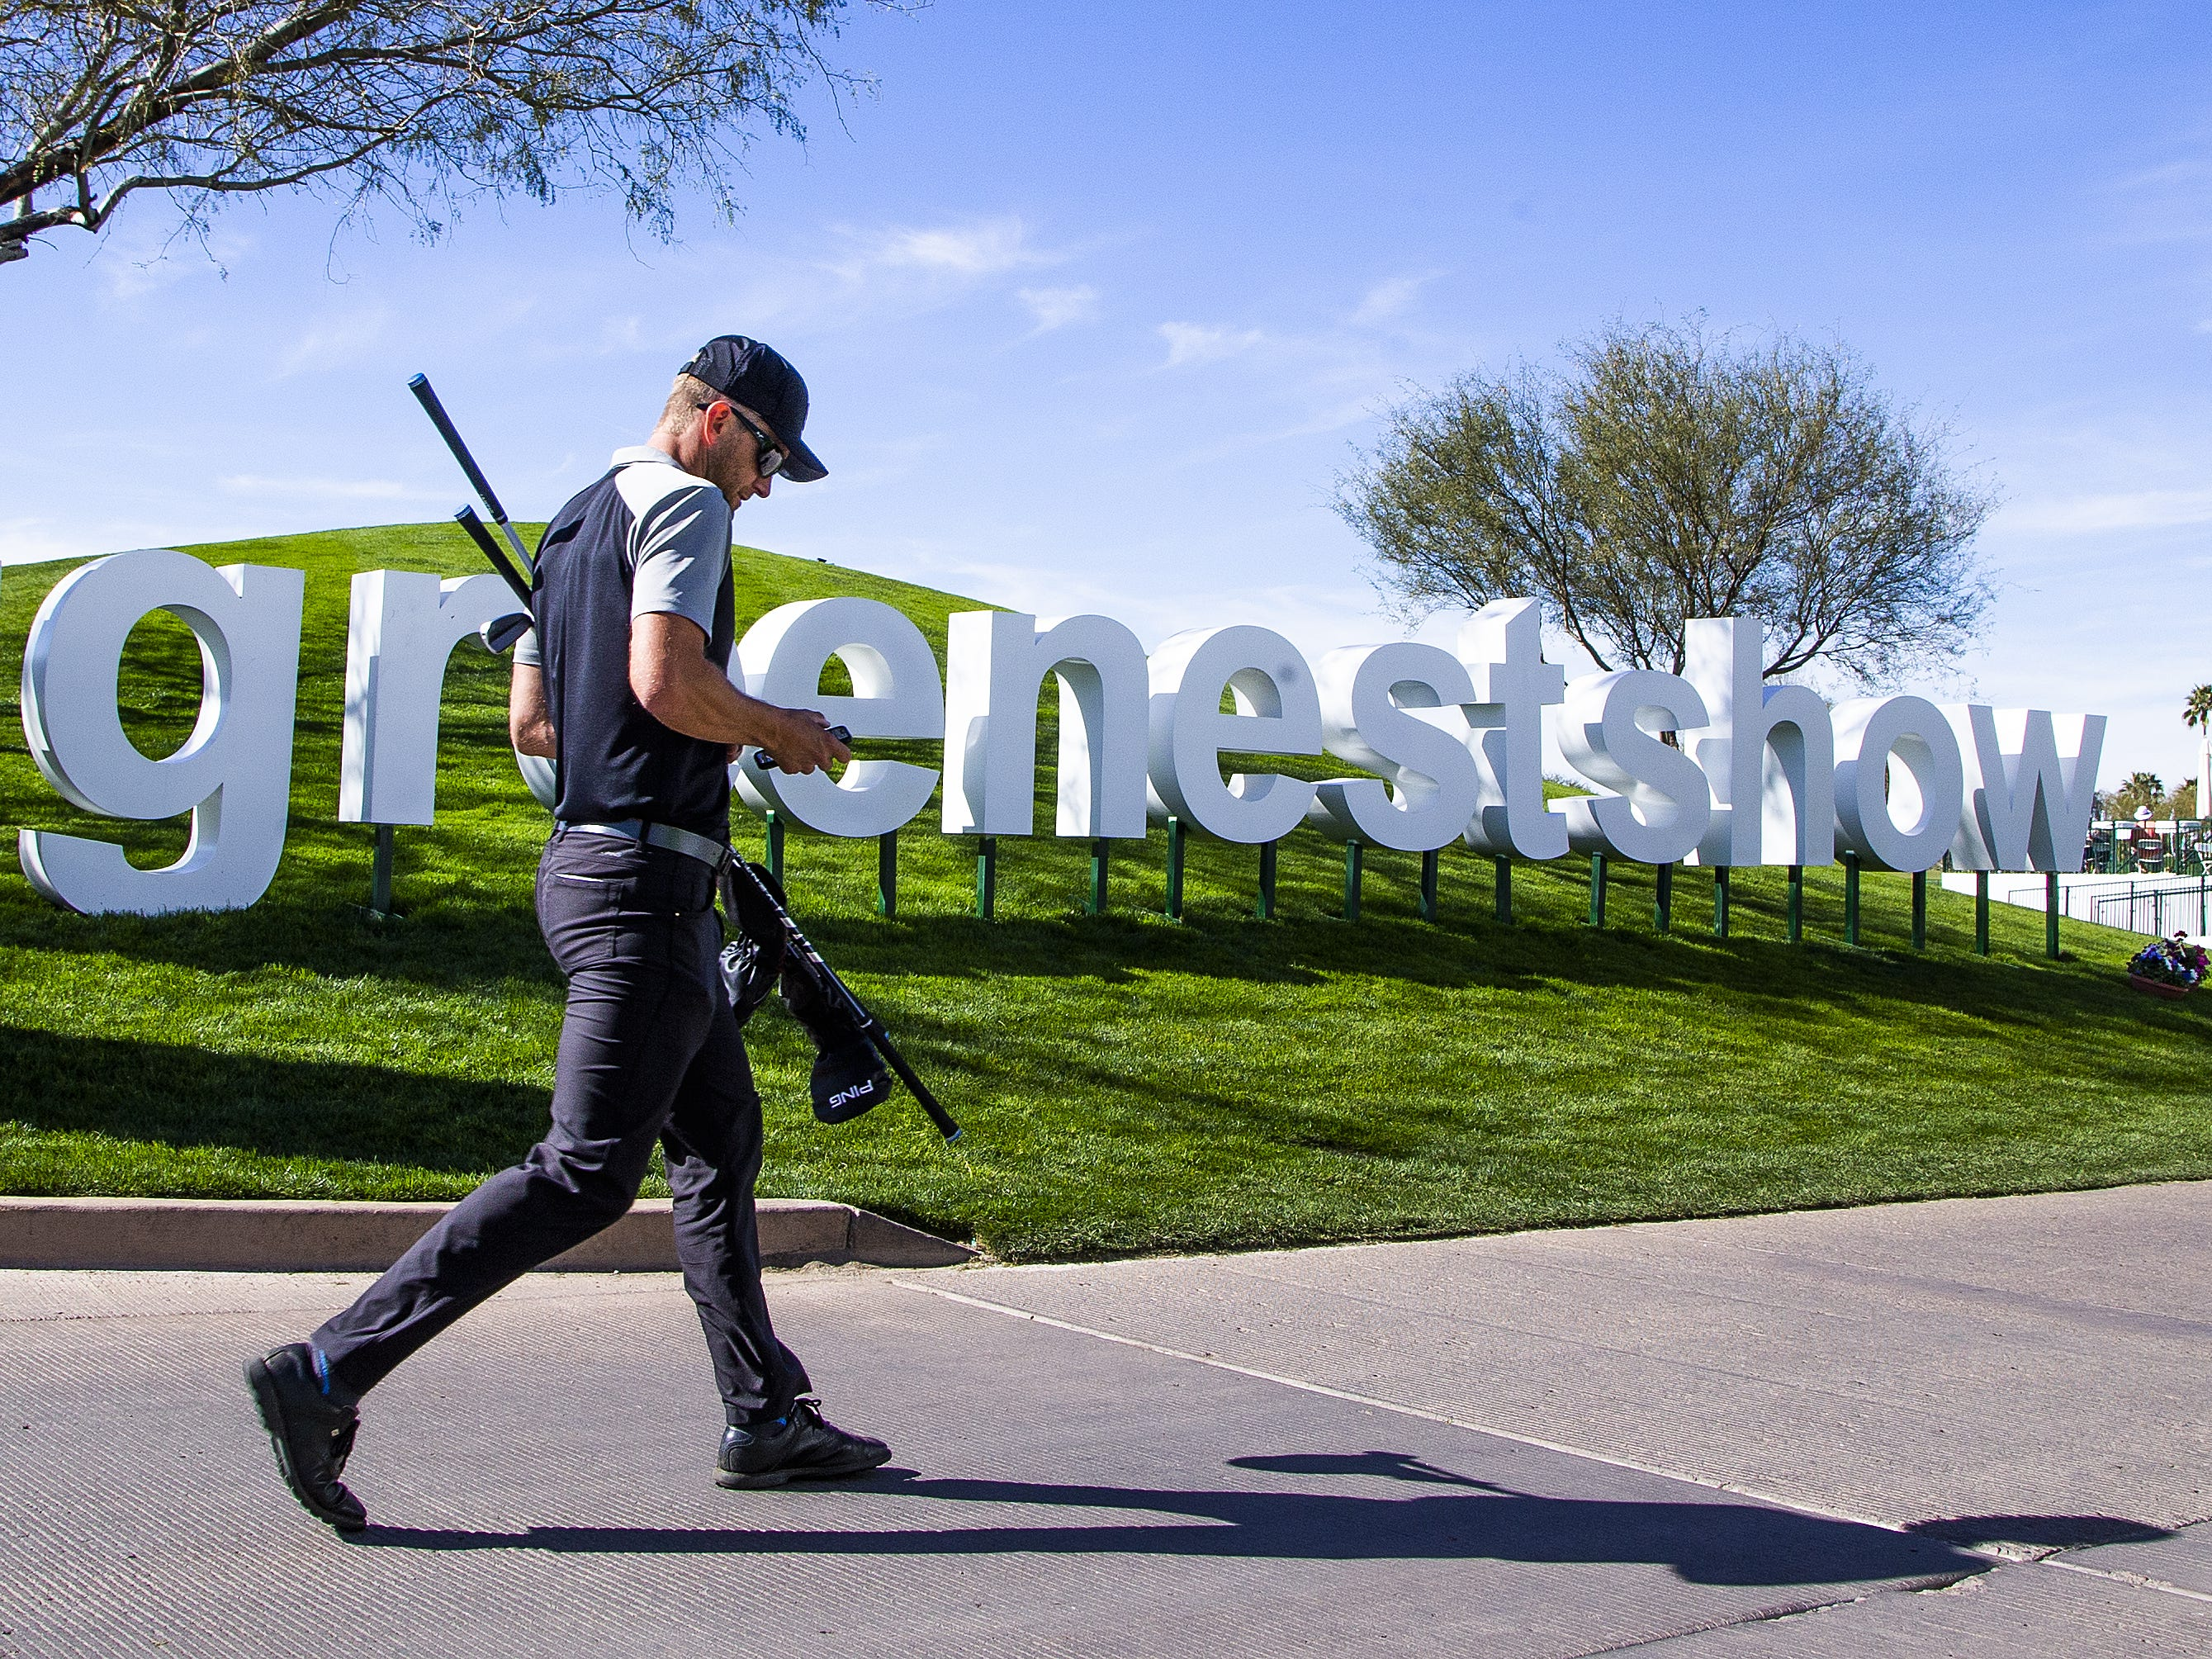 A golfer walks by the #greenestshow sign during the Kadima.Ventures Pro-Am at the Waste Management Phoenix Open at the TPC Scottsdale, Monday, January 28, 2019.